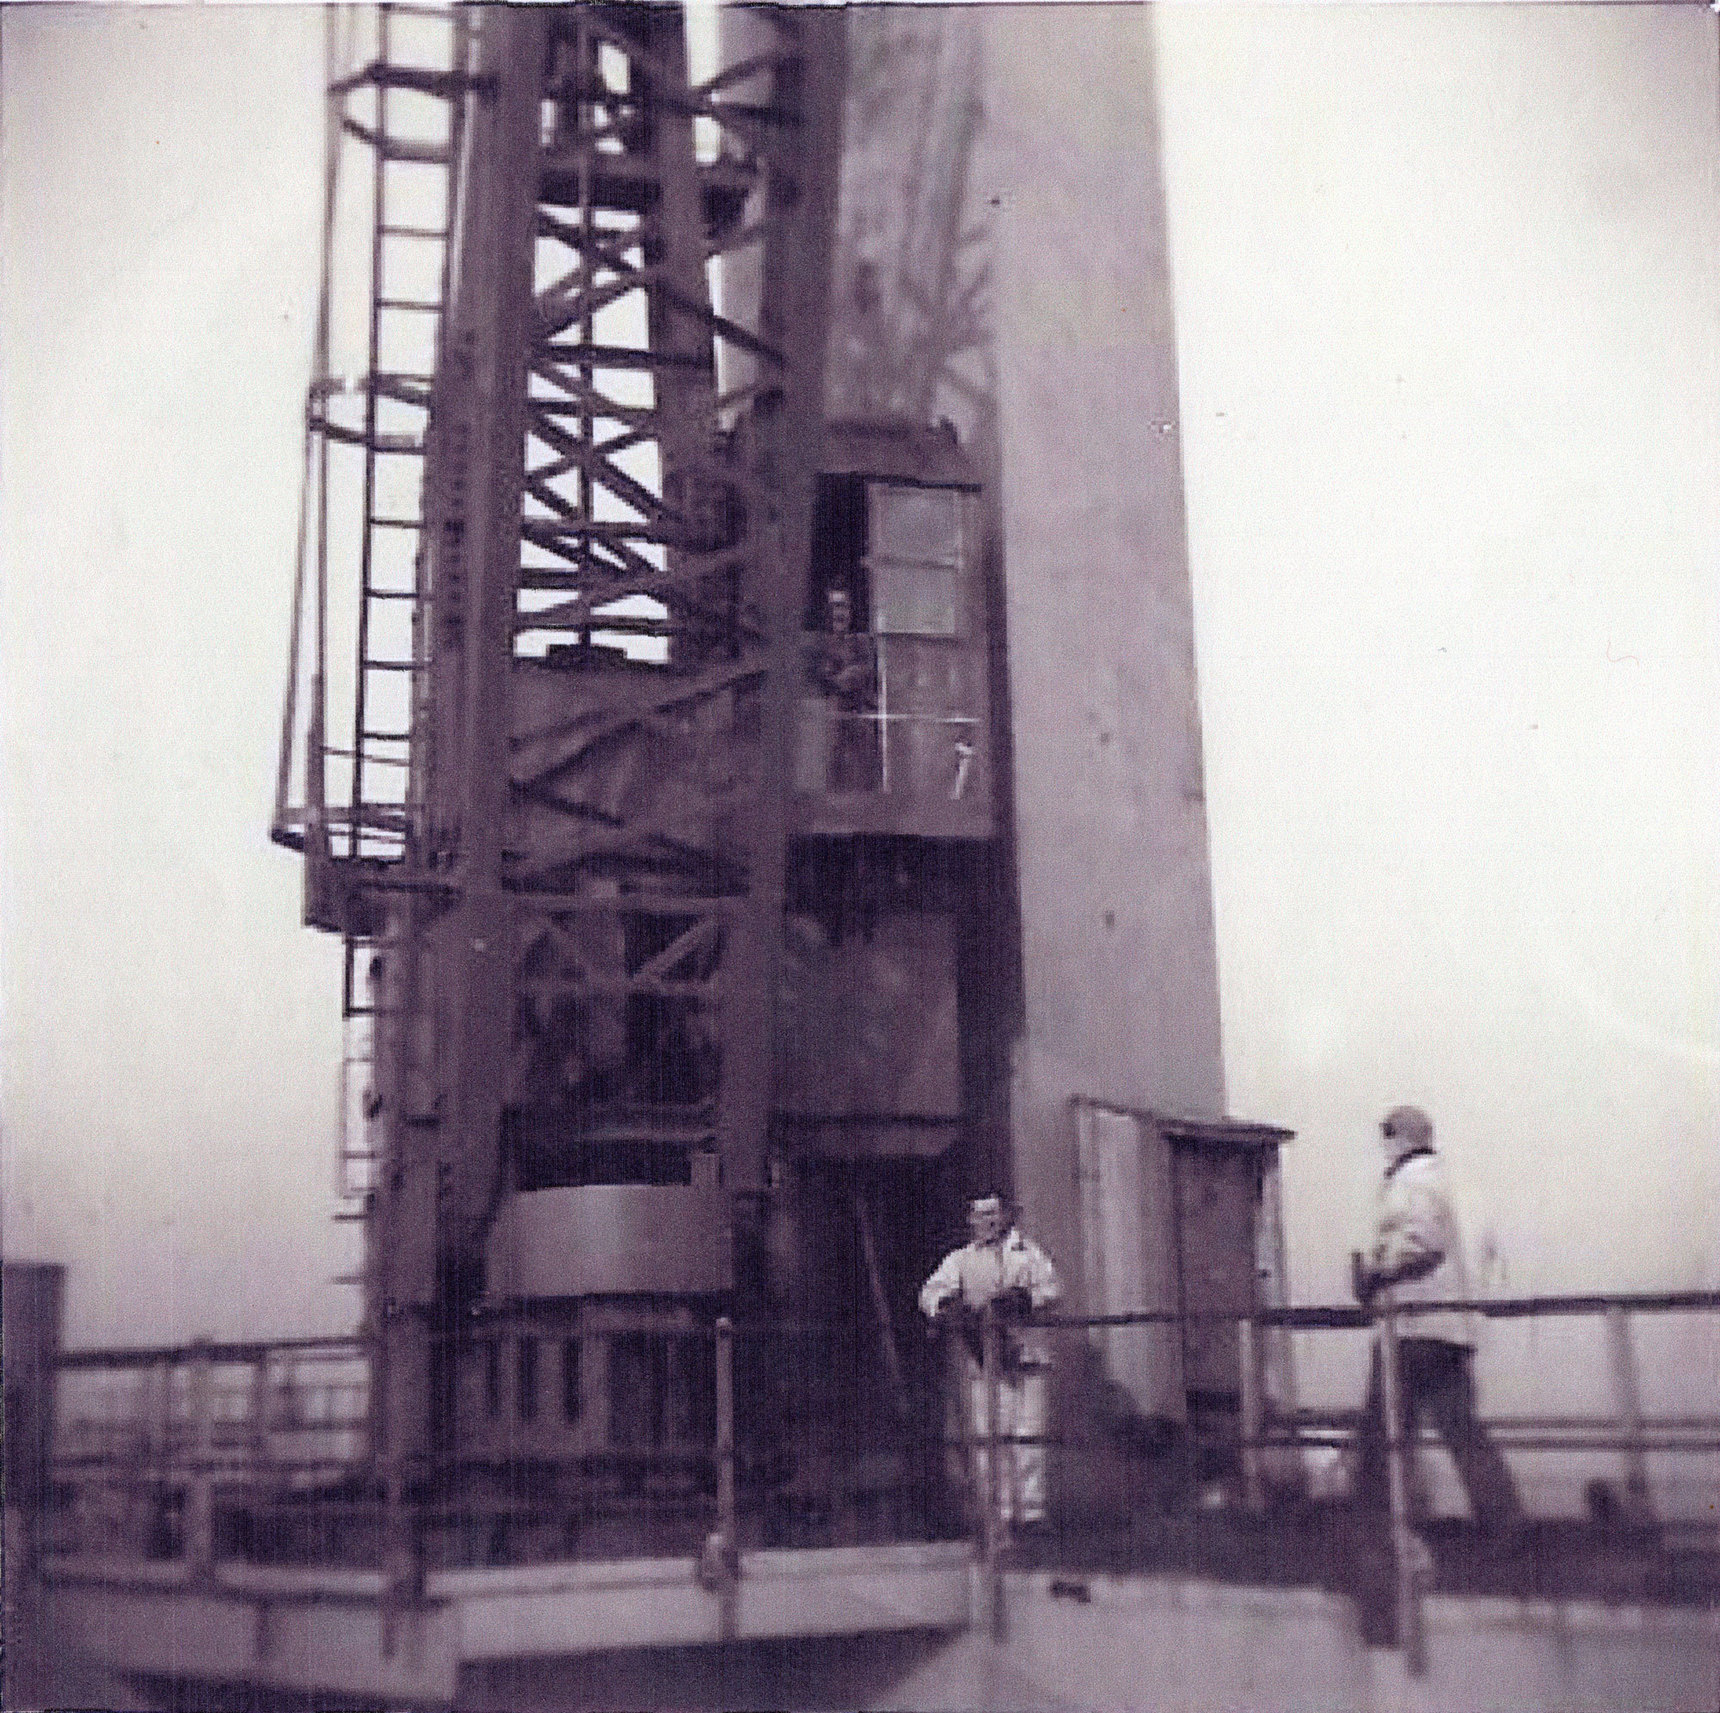 Construction Workers On Forth Road Bridge By One Of The Towers c.1962